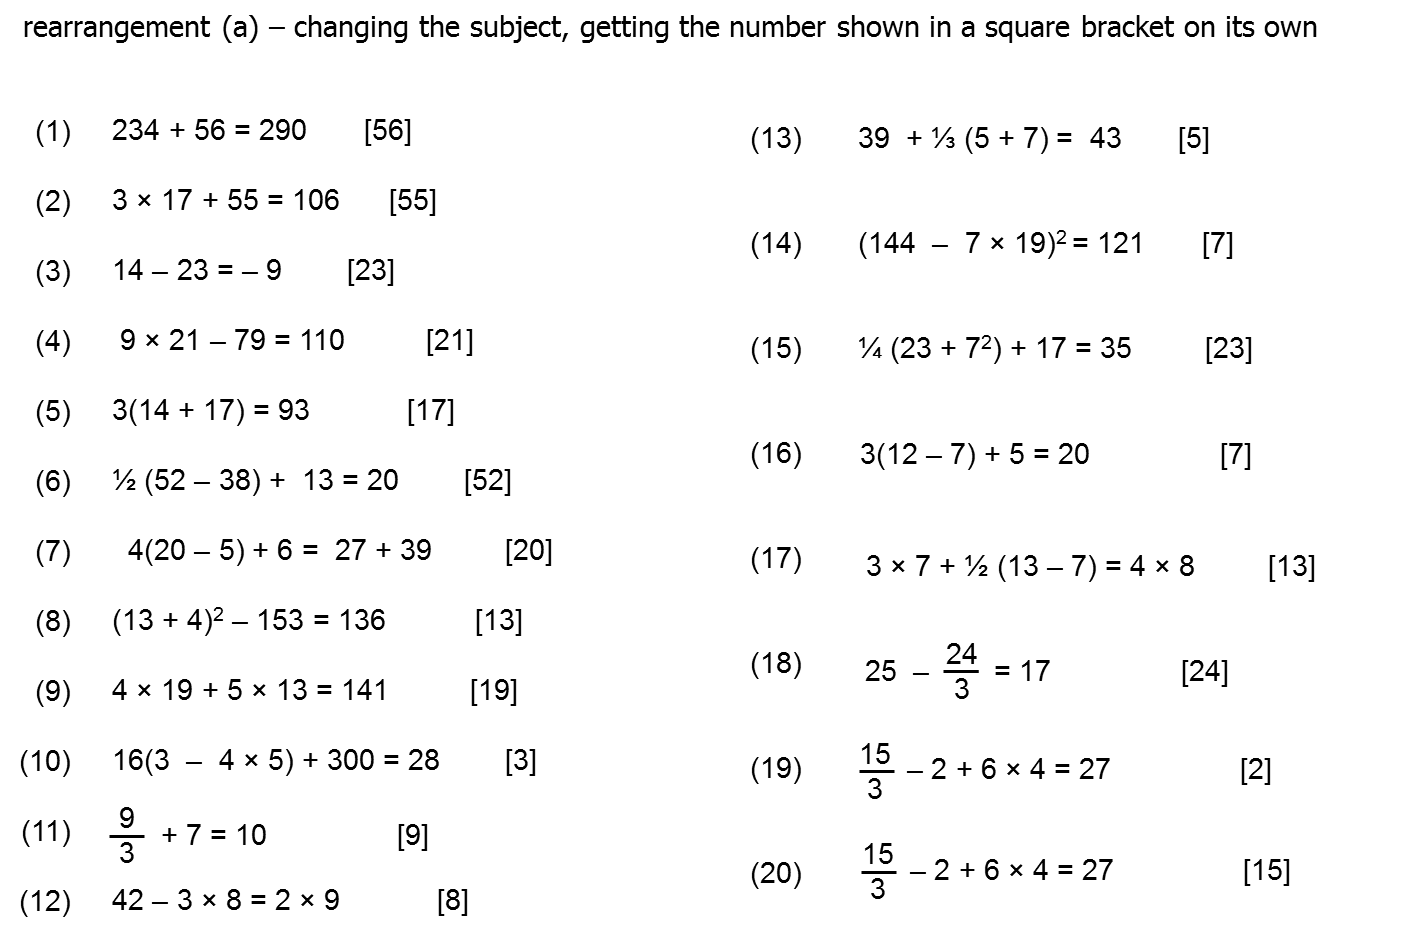 Algebra Worksheet New 9 Algebra Worksheets Expanding Brackets